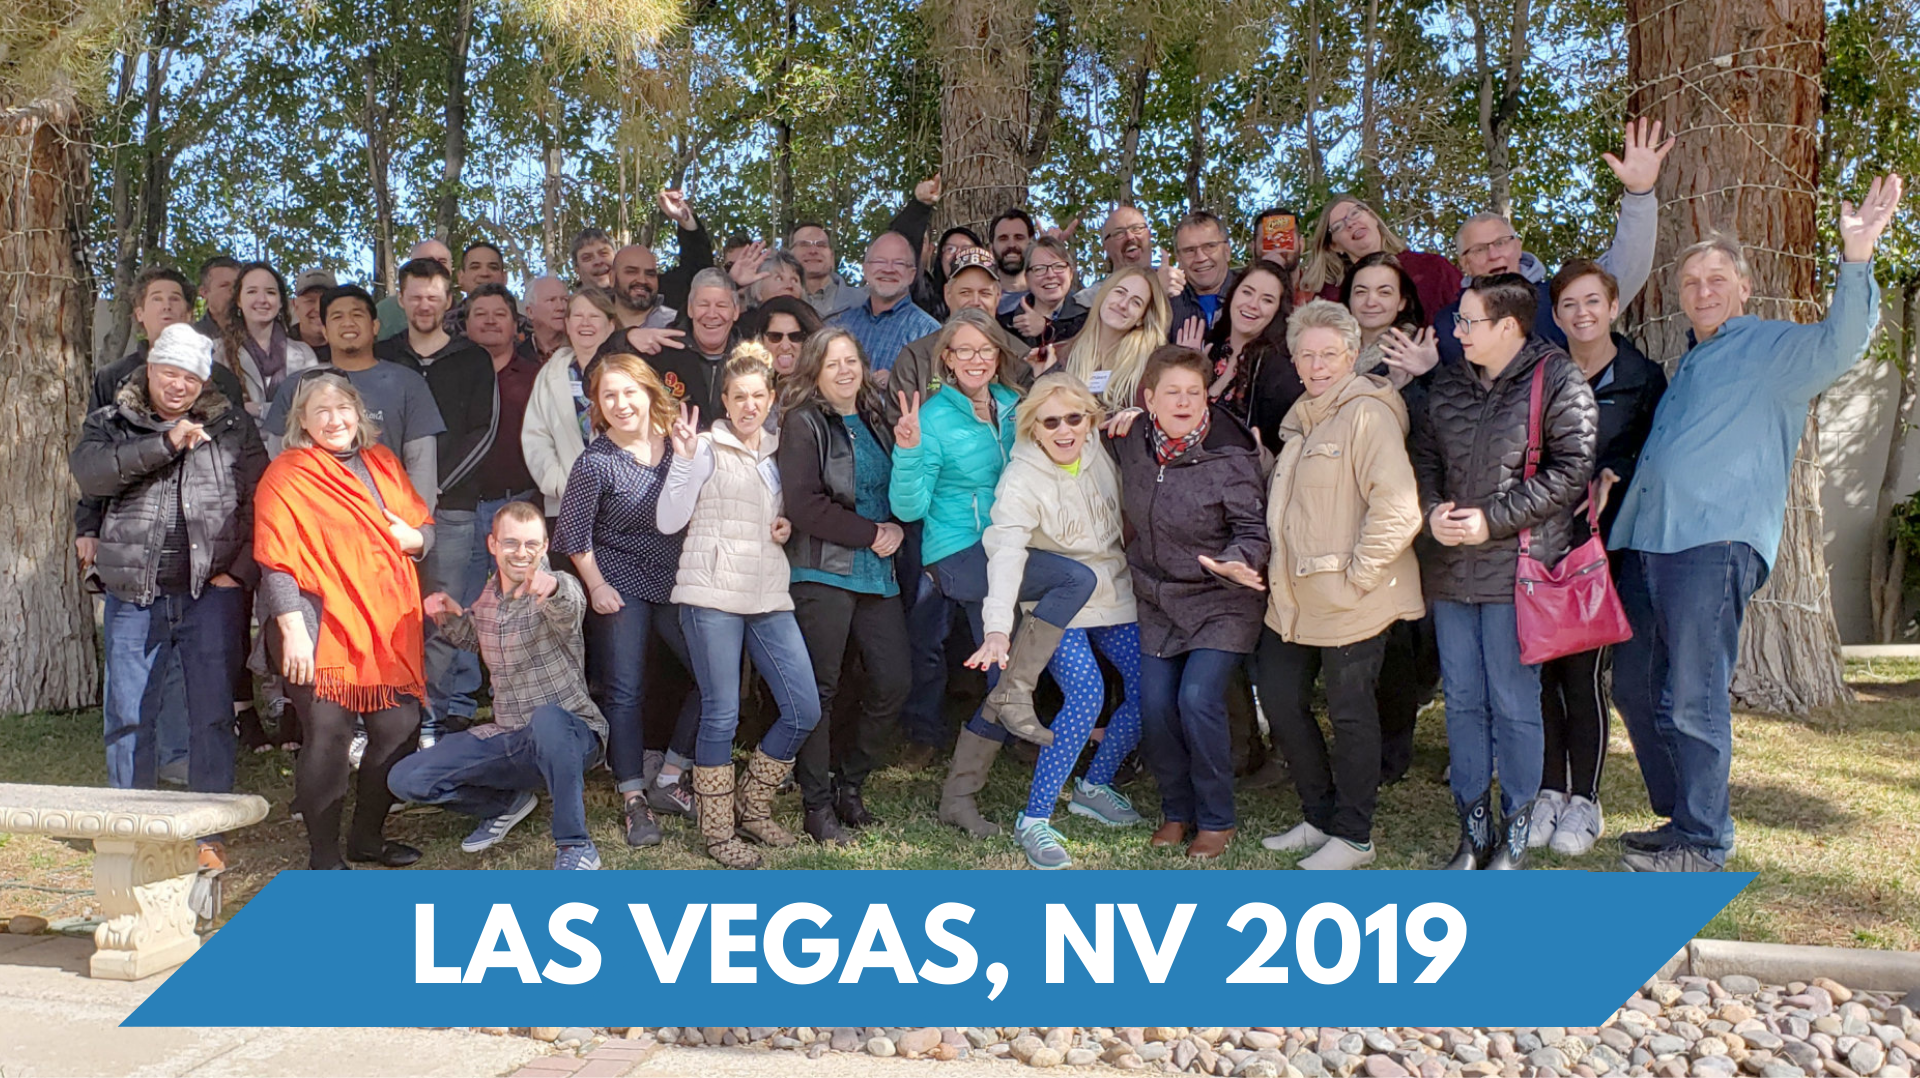 Chief Architect Training by Chief Experts Academy 2019 Las Vegas, Nevada